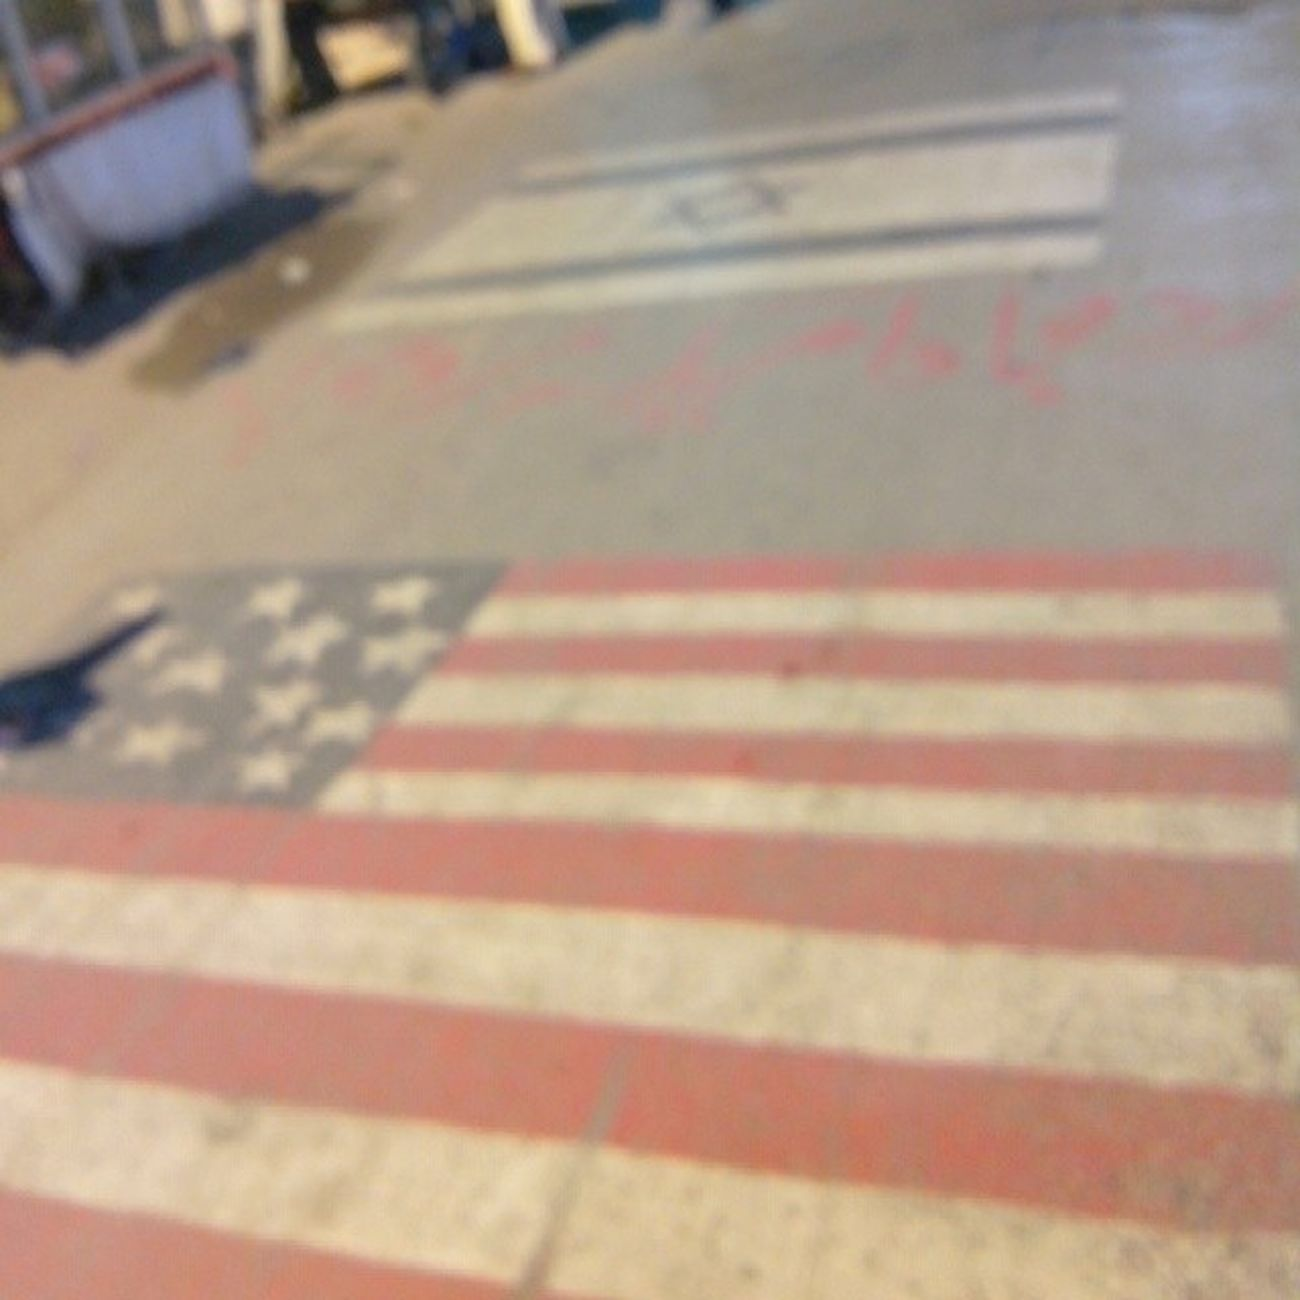 American & Israeli flag on road.